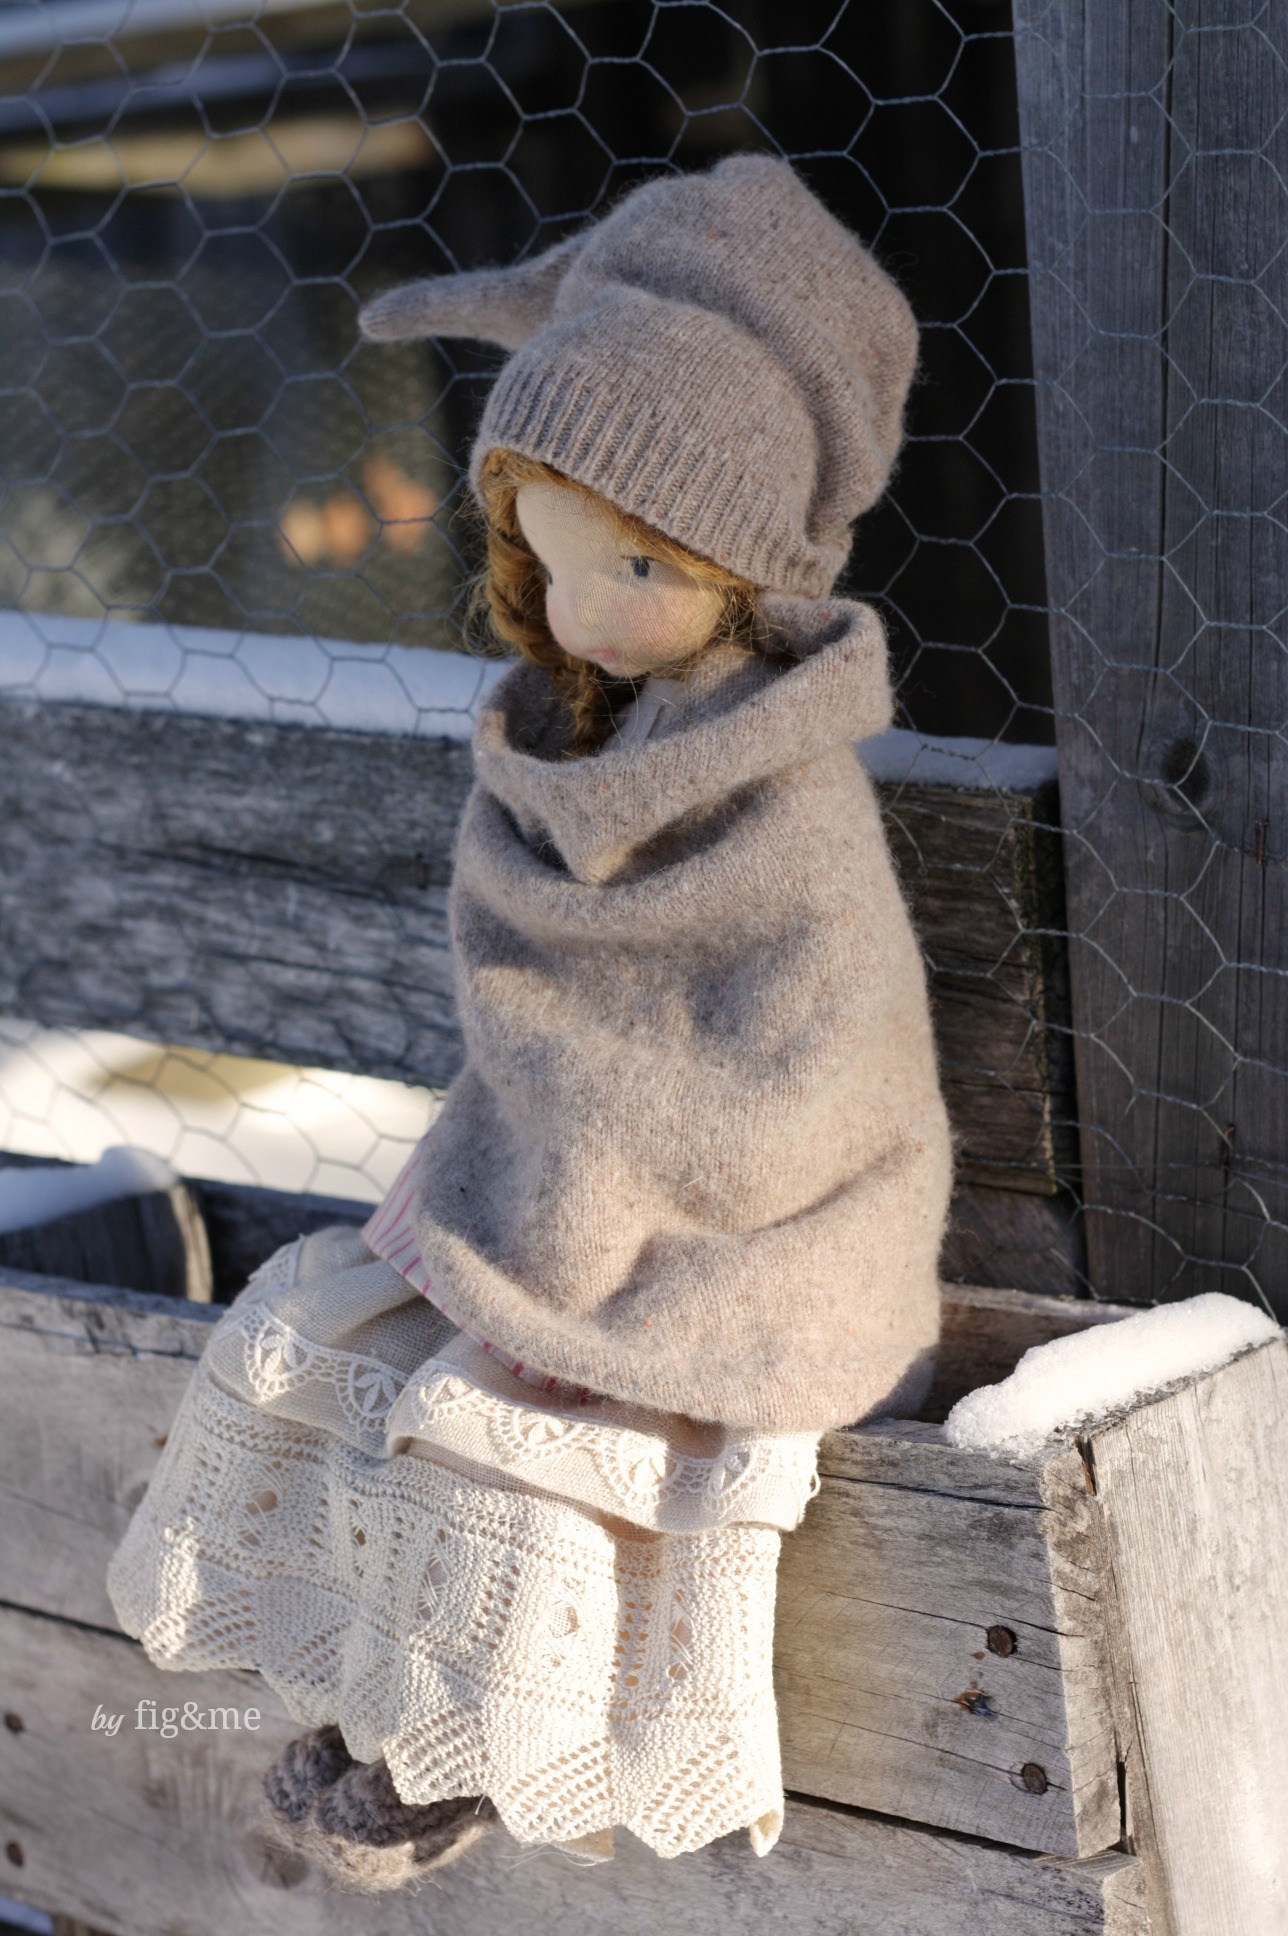 Melina in her winter clothes, a Mannikin style,natural fiber art doll by Fig and me. Wearing victorian lace and Merino clothing.